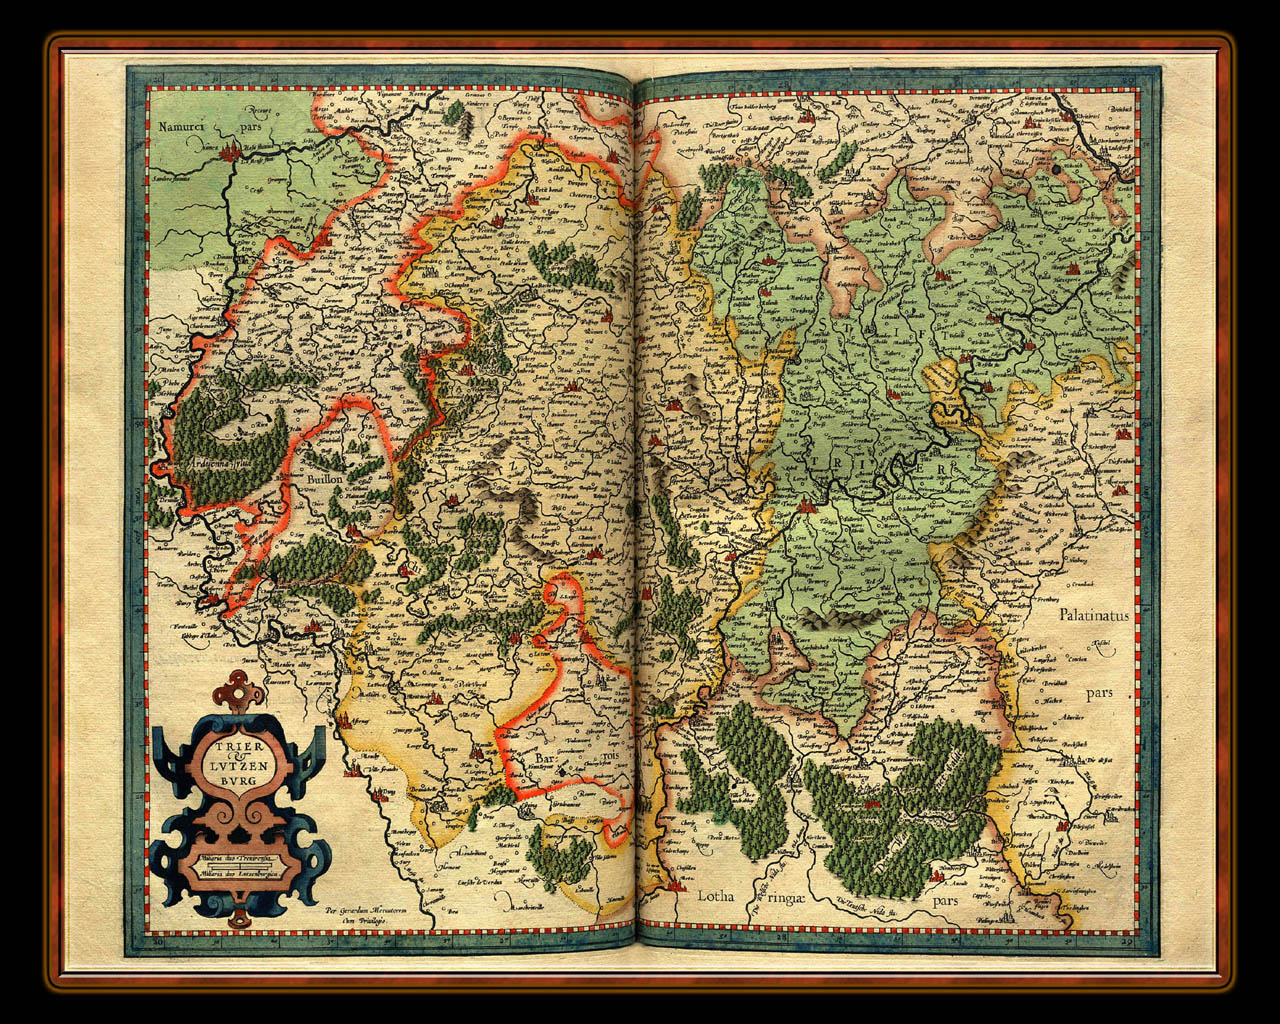 """Gerhard Mercator 1595 World Atlas - Cosmographicae"" - Wallpaper No. 49 of 106. Right click for saving options."